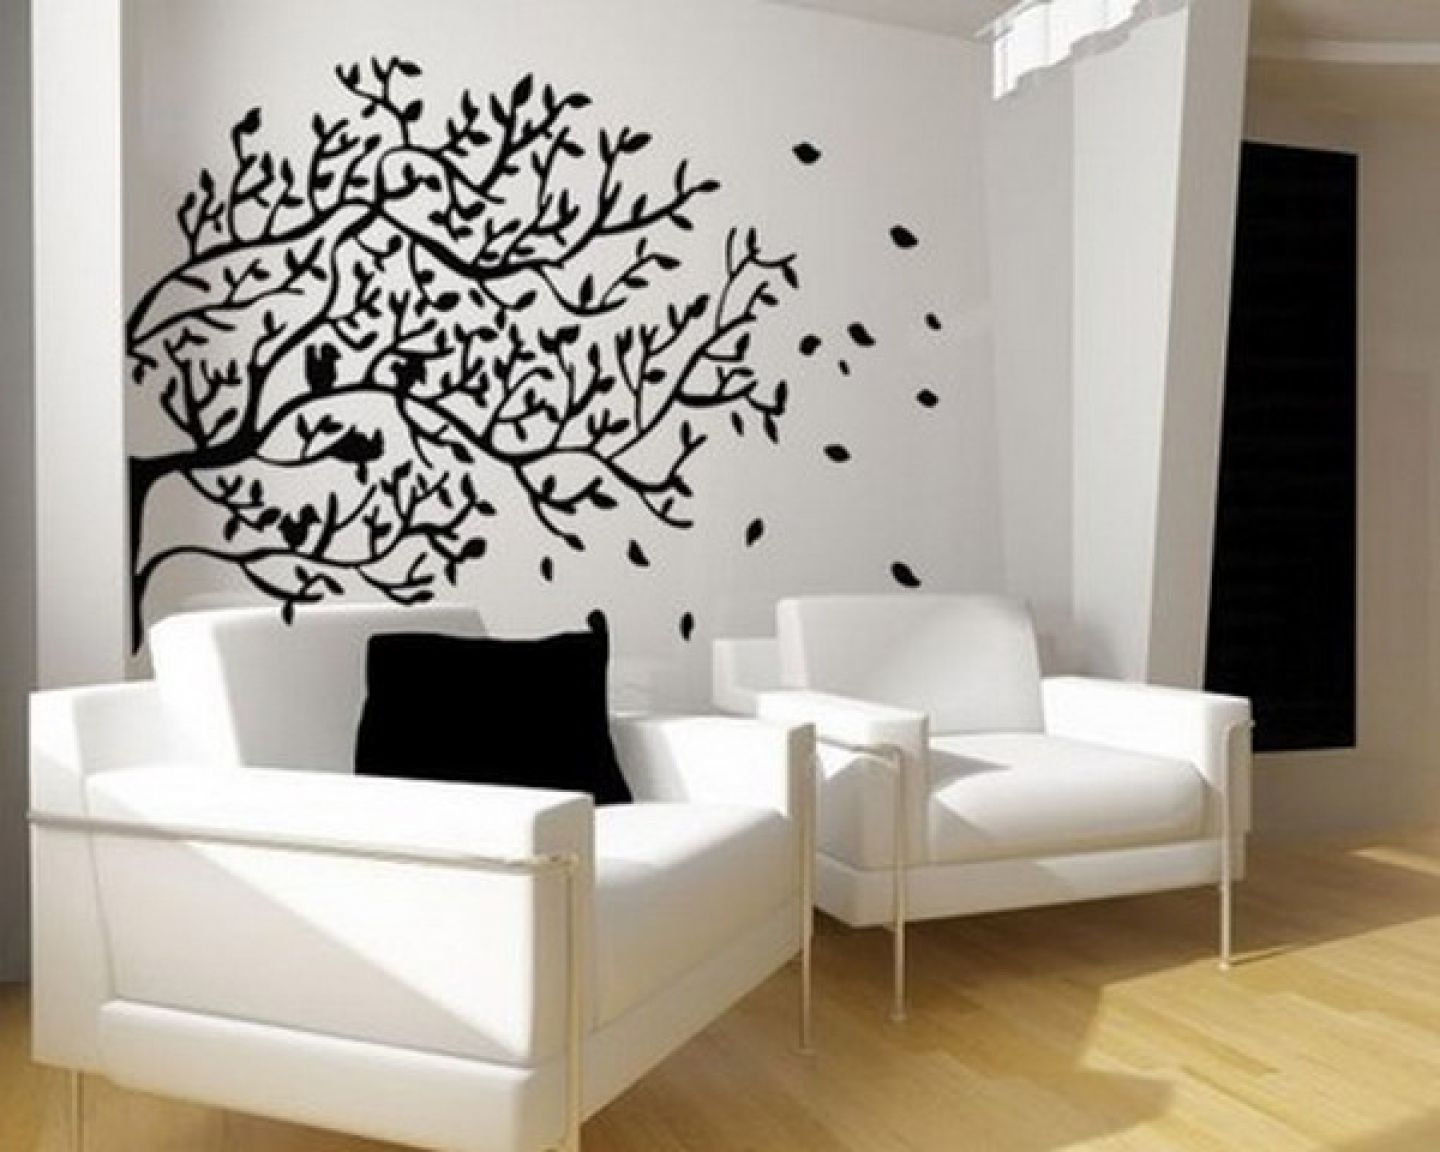 Bedroom wall art trees - Luxury Living Room Tree Wall Murals Sticker Decorations Image